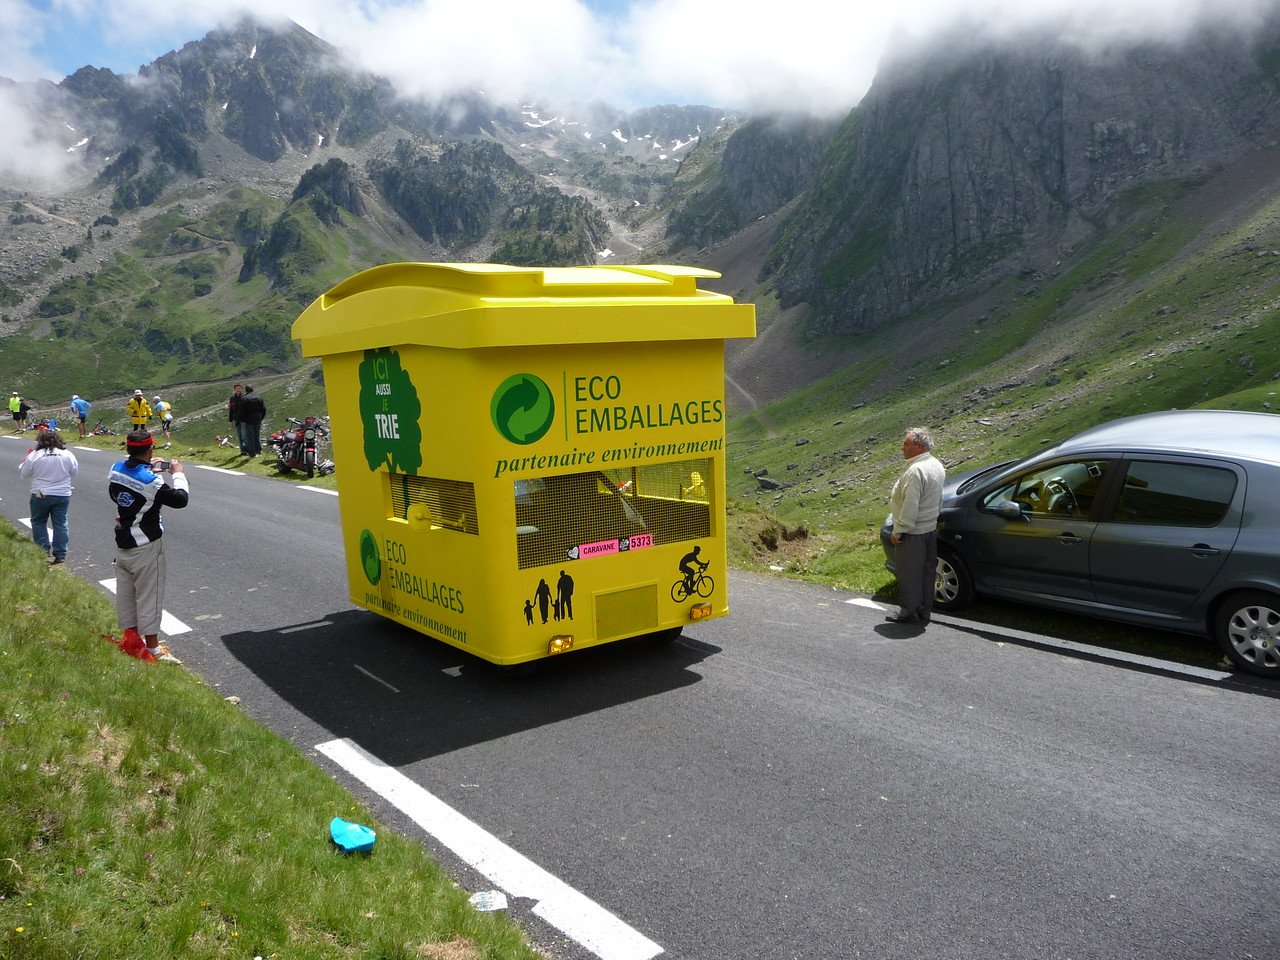 You don't see that everyday.